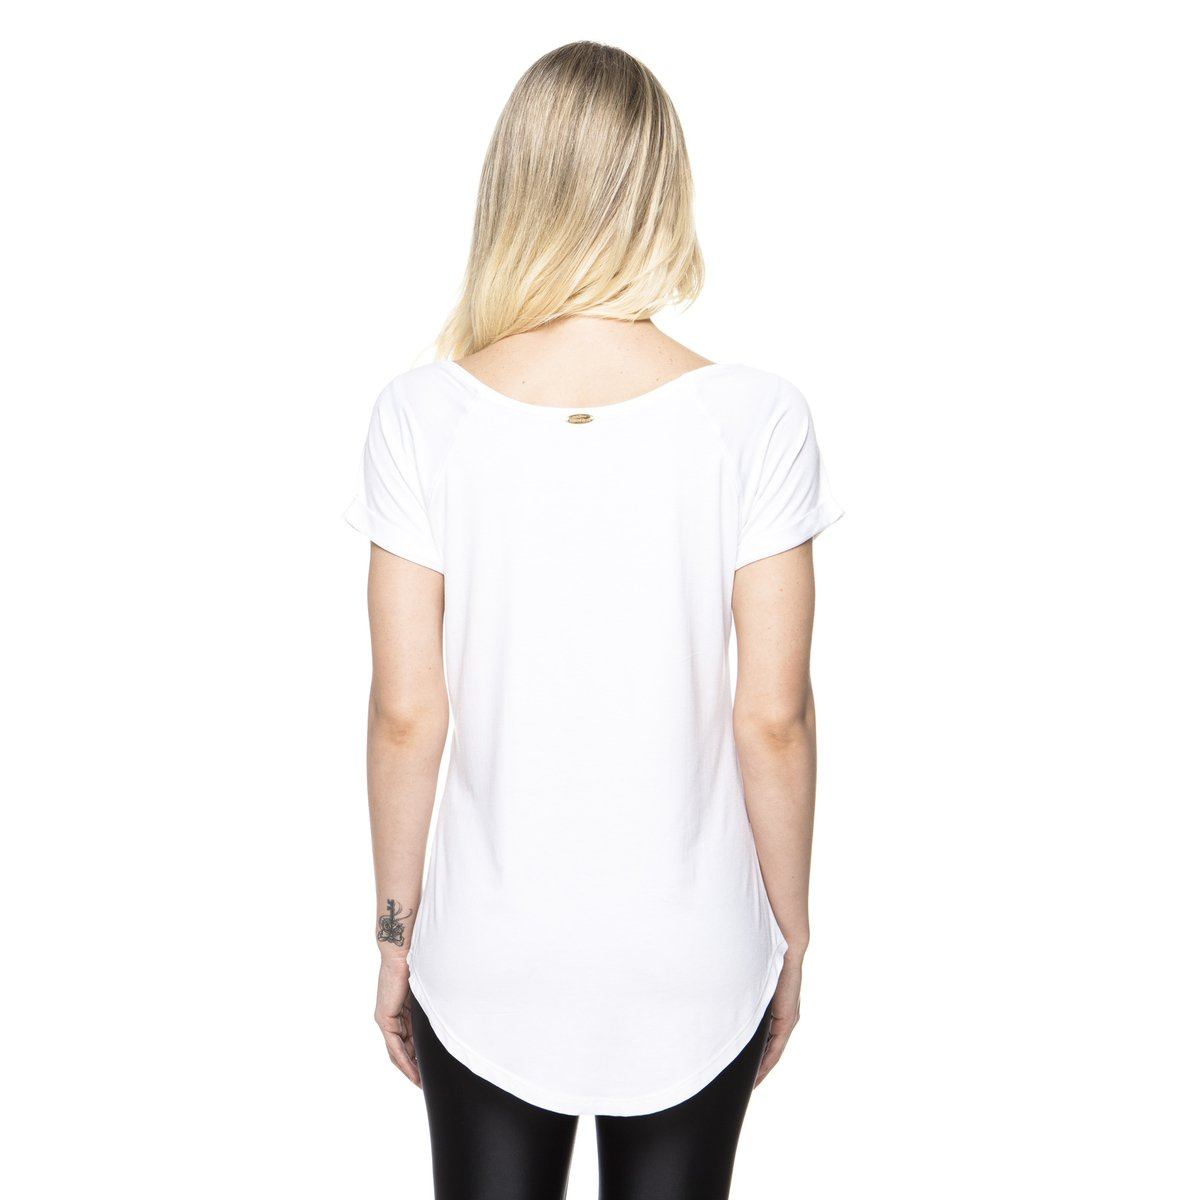 Vis Camiseta Branco Camiseta New New Up Pocket ZdUwZI